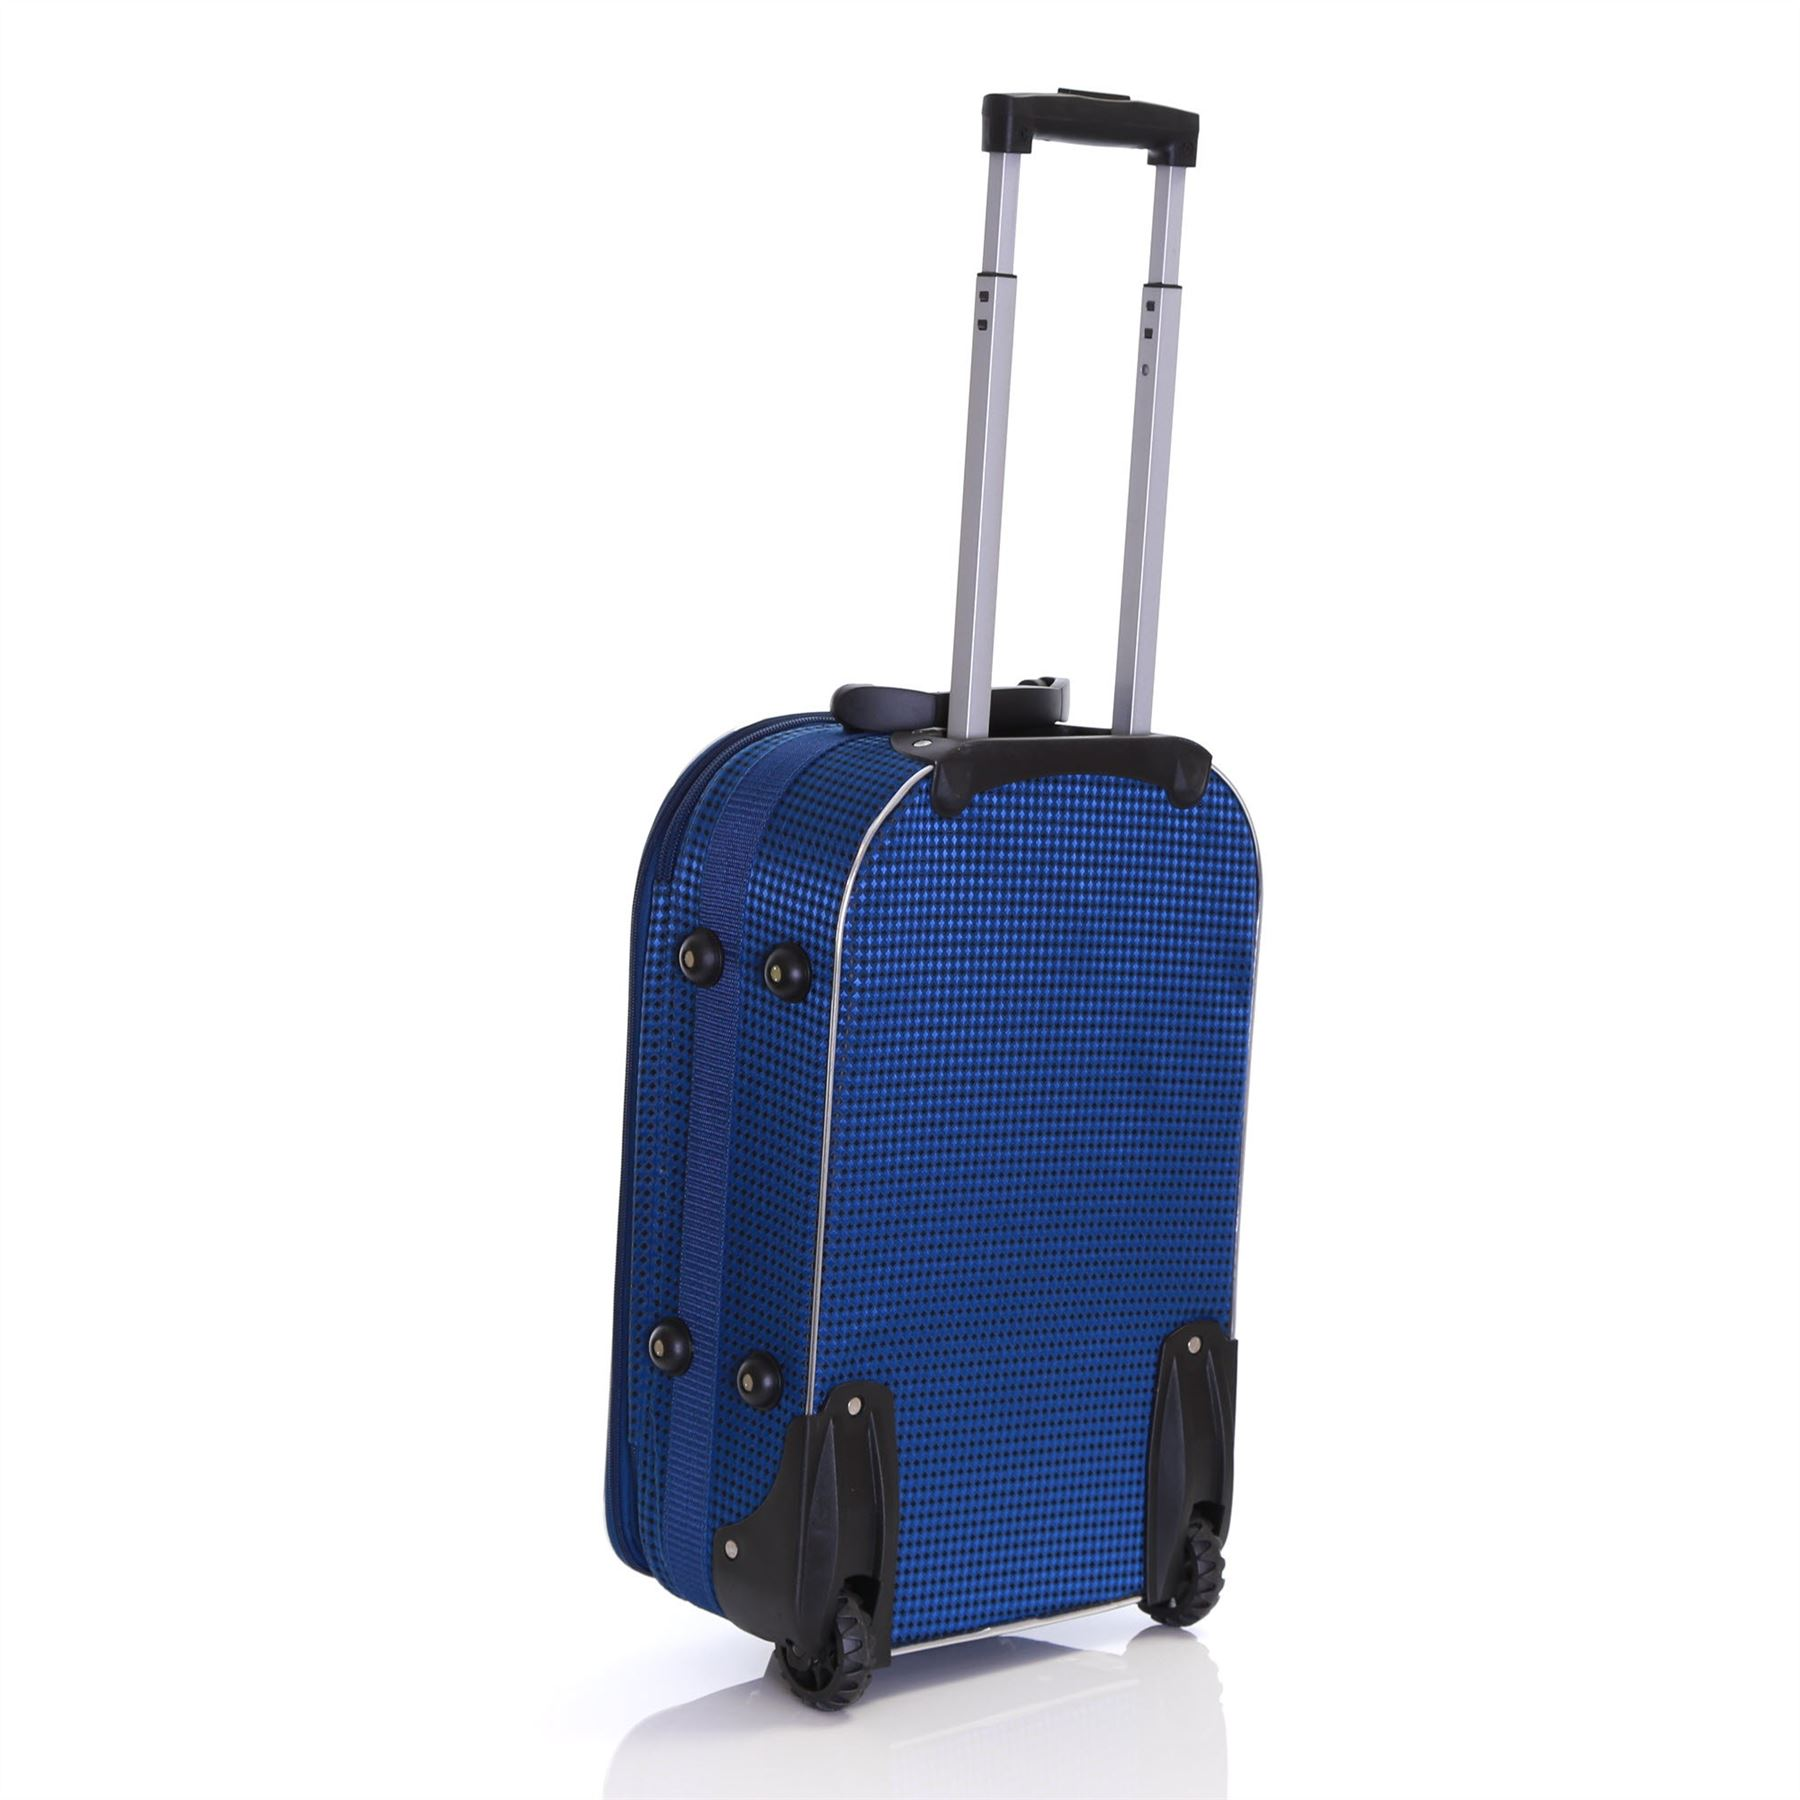 Set-of-2-Lightweight-Expandable-Luggage-Trolleys-Suitcases-Cases-Bags-Set thumbnail 13